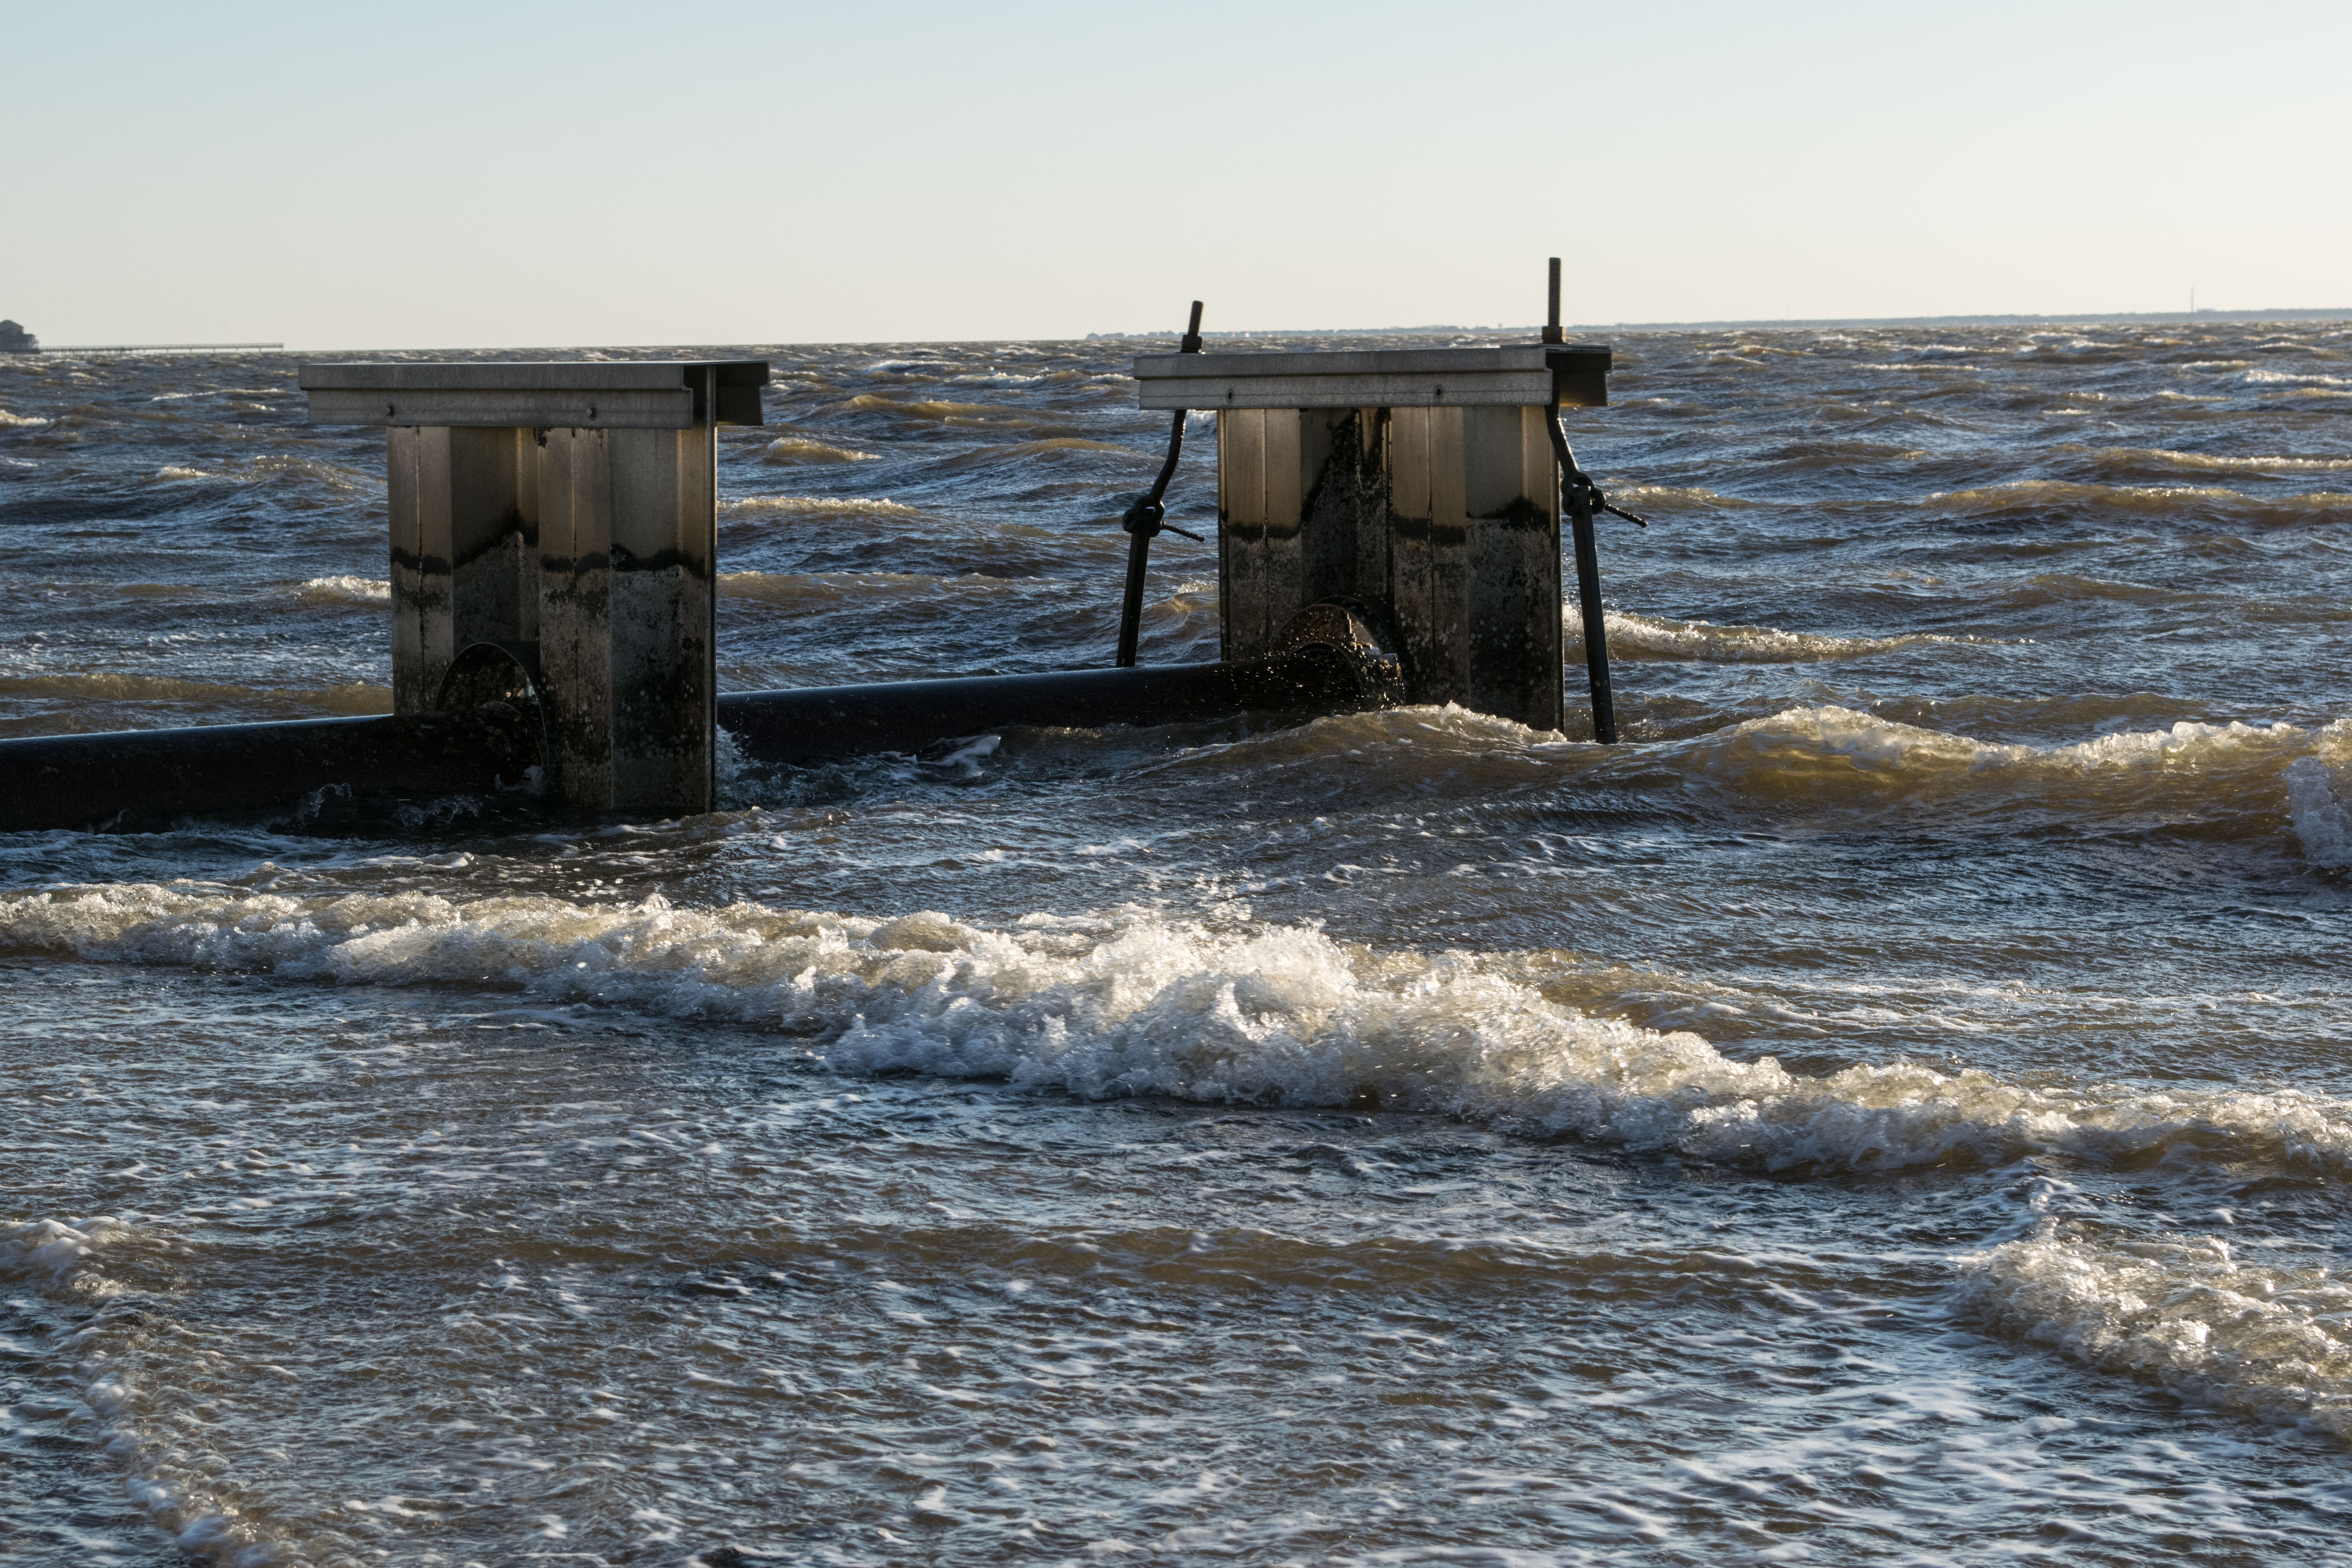 Winds whip up the Jersey Shore, Feb. 25, 2019. (Photo: Daniel Nee)